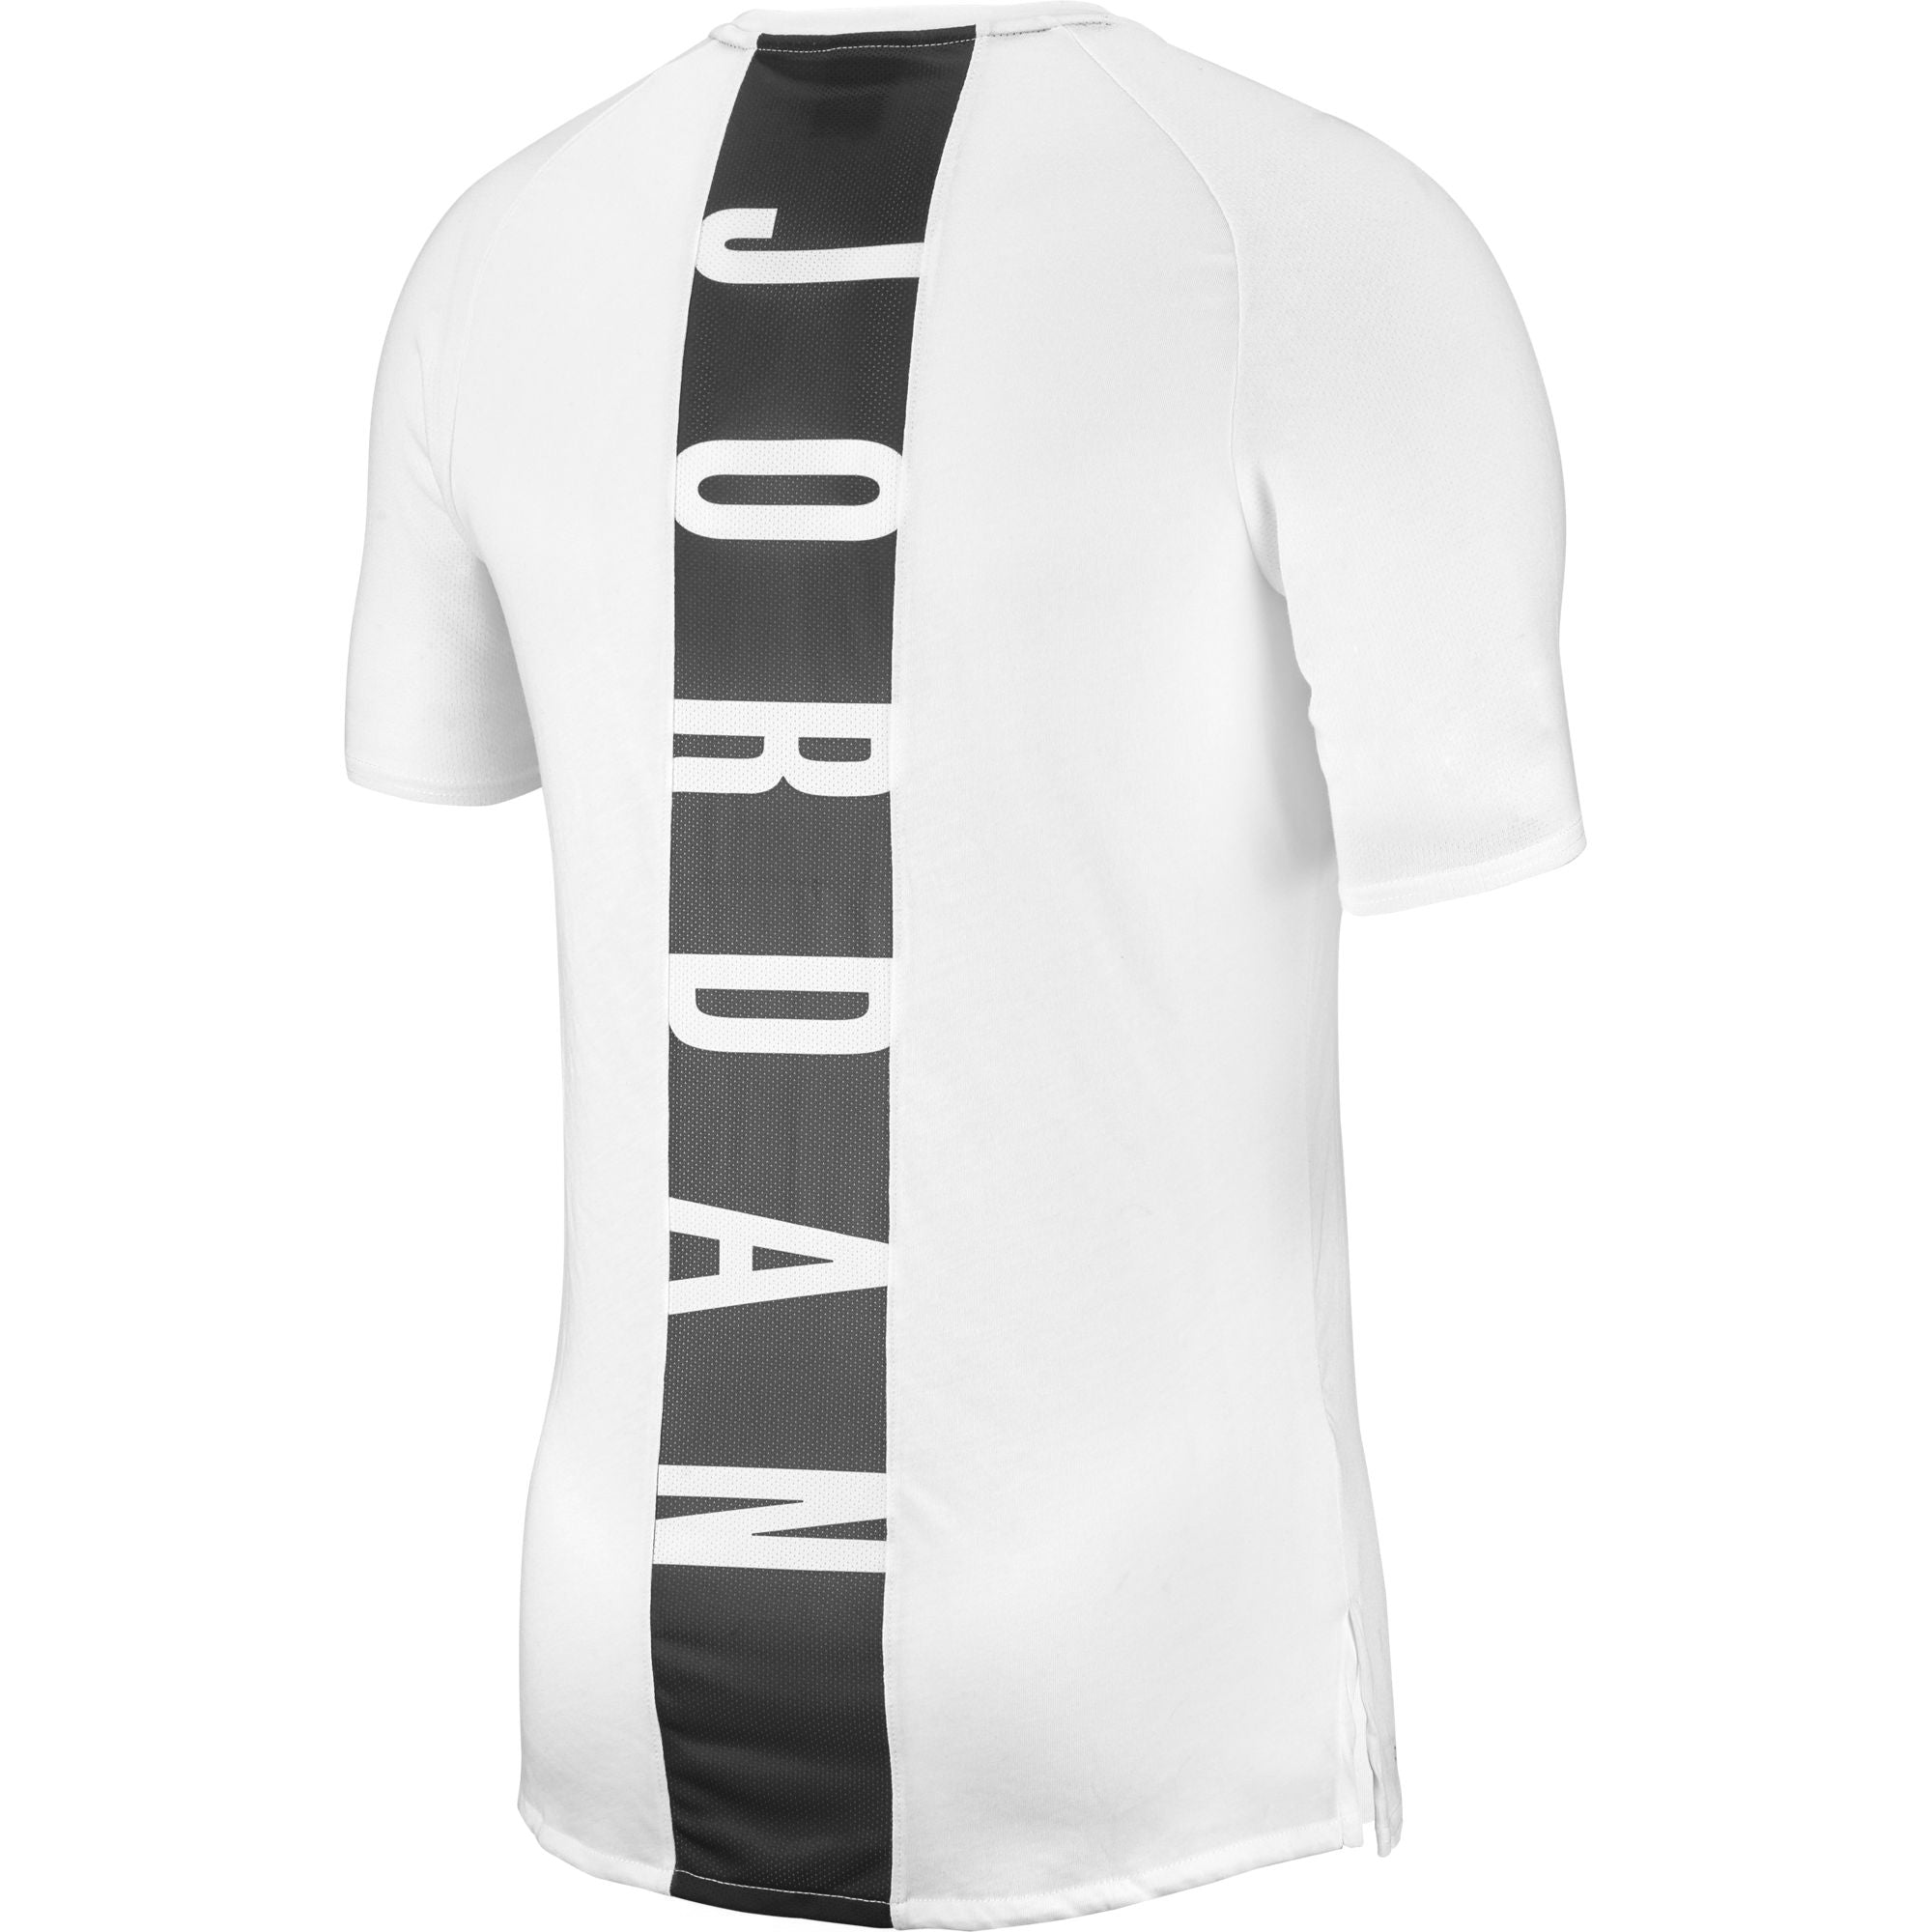 Nike Jordan Training Dry 23 Alpha Short-Sleeve Training Top - White/Gym Red/Black